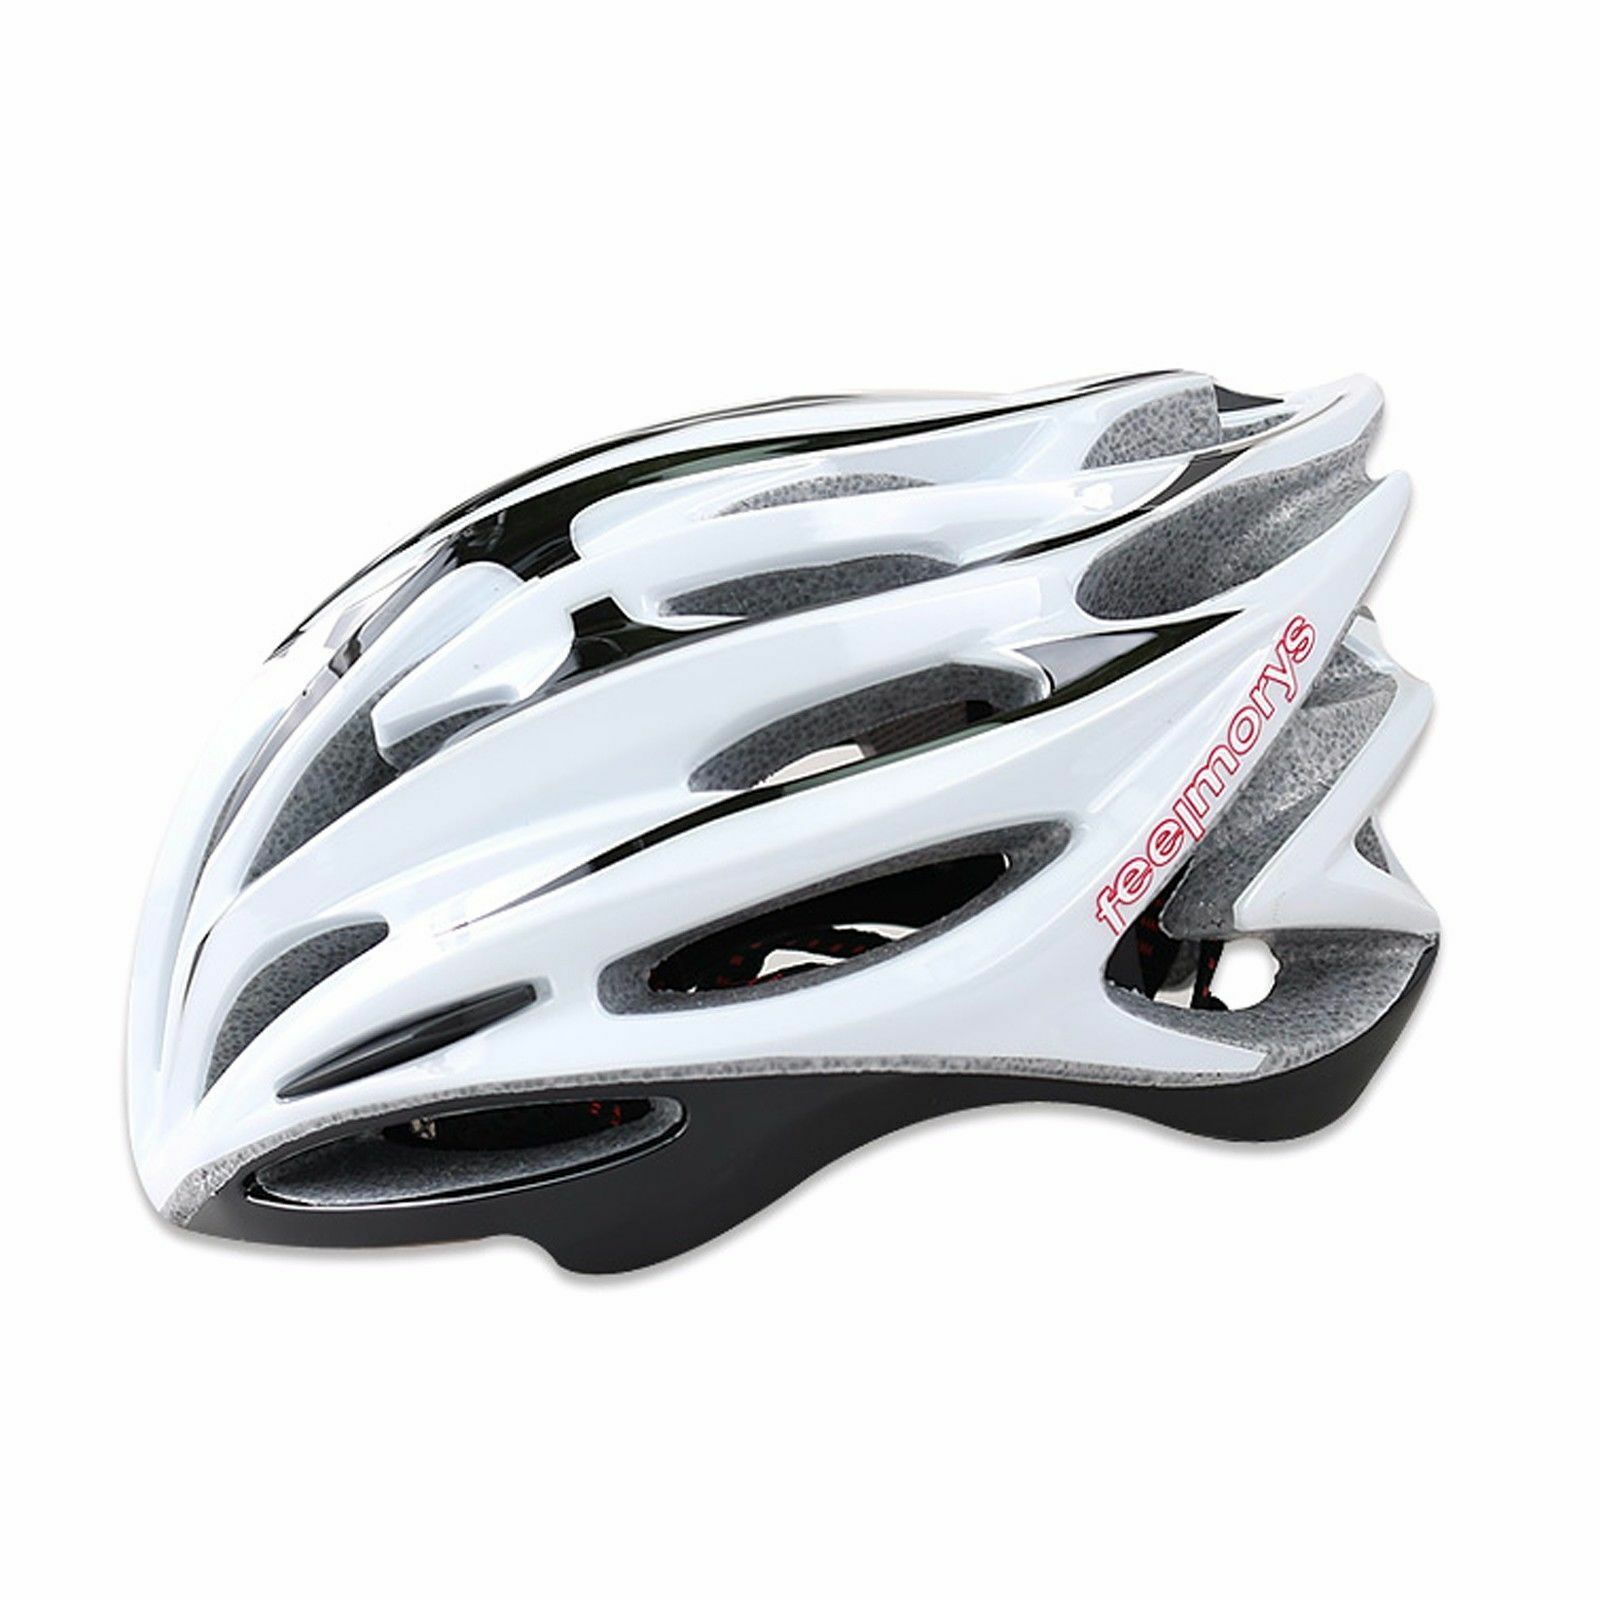 NEW Feelmorys F-575 Cycling Helmet Super  Light Asian Fit Helemt 5 colors  top brands sell cheap